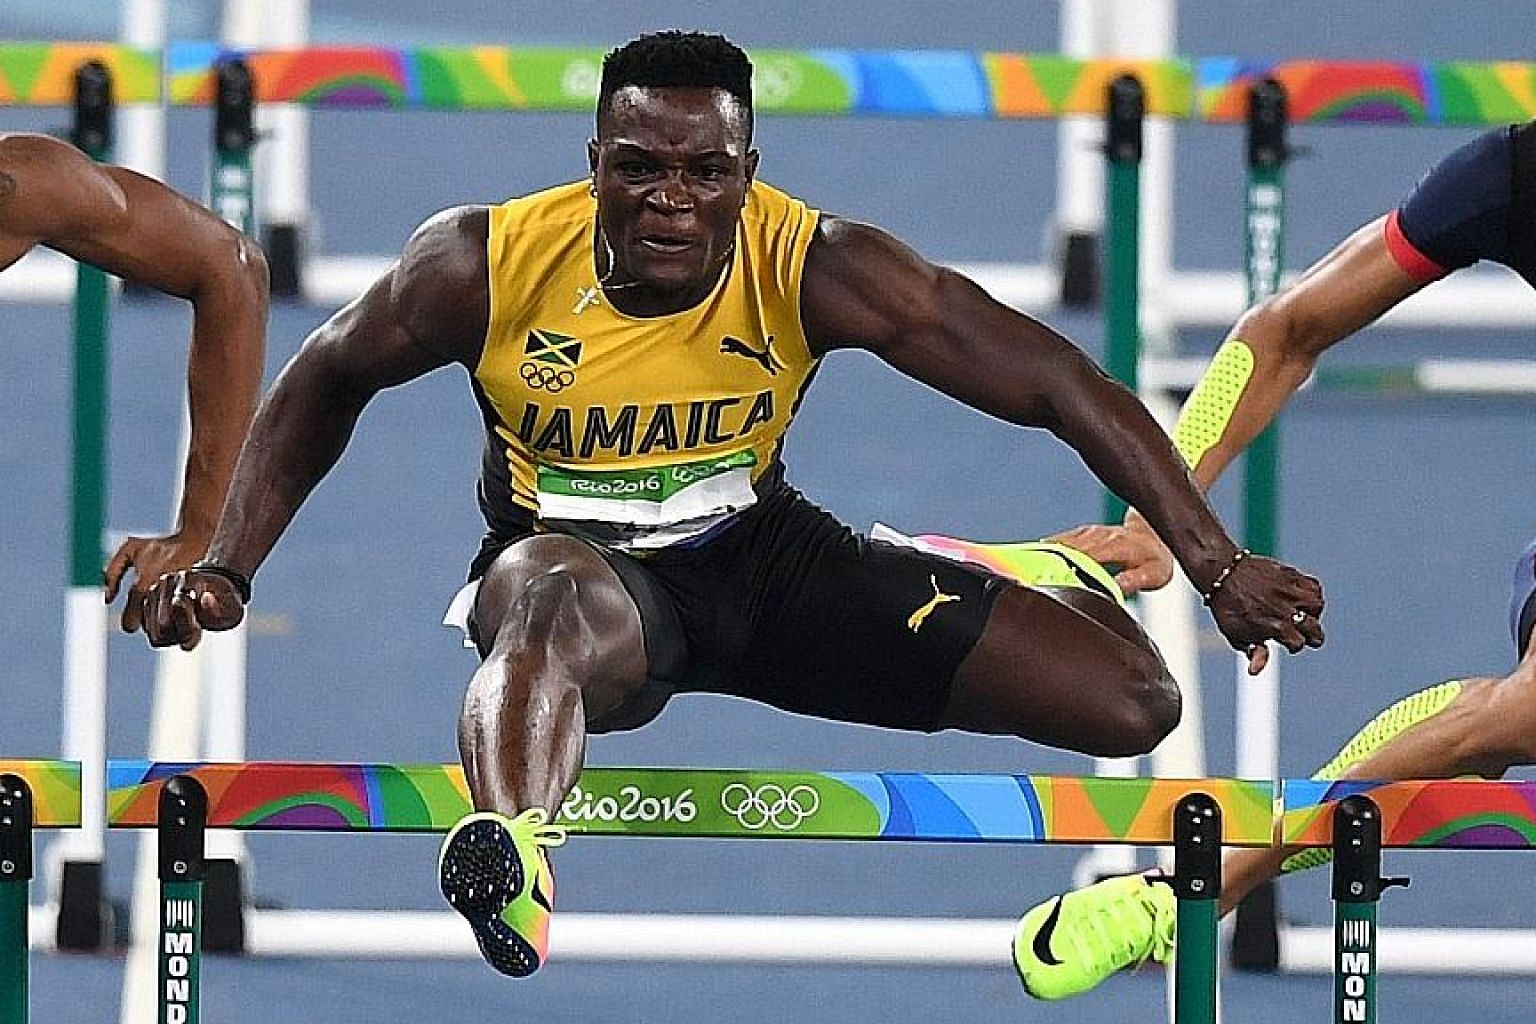 Jamaica's Omar McLeod on his way to winning gold in the men's 110m hurdles on Tuesday. The 22-year-old came into the race as a strong favourite and produced a stirring performance to win in a time of 13.05 seconds.